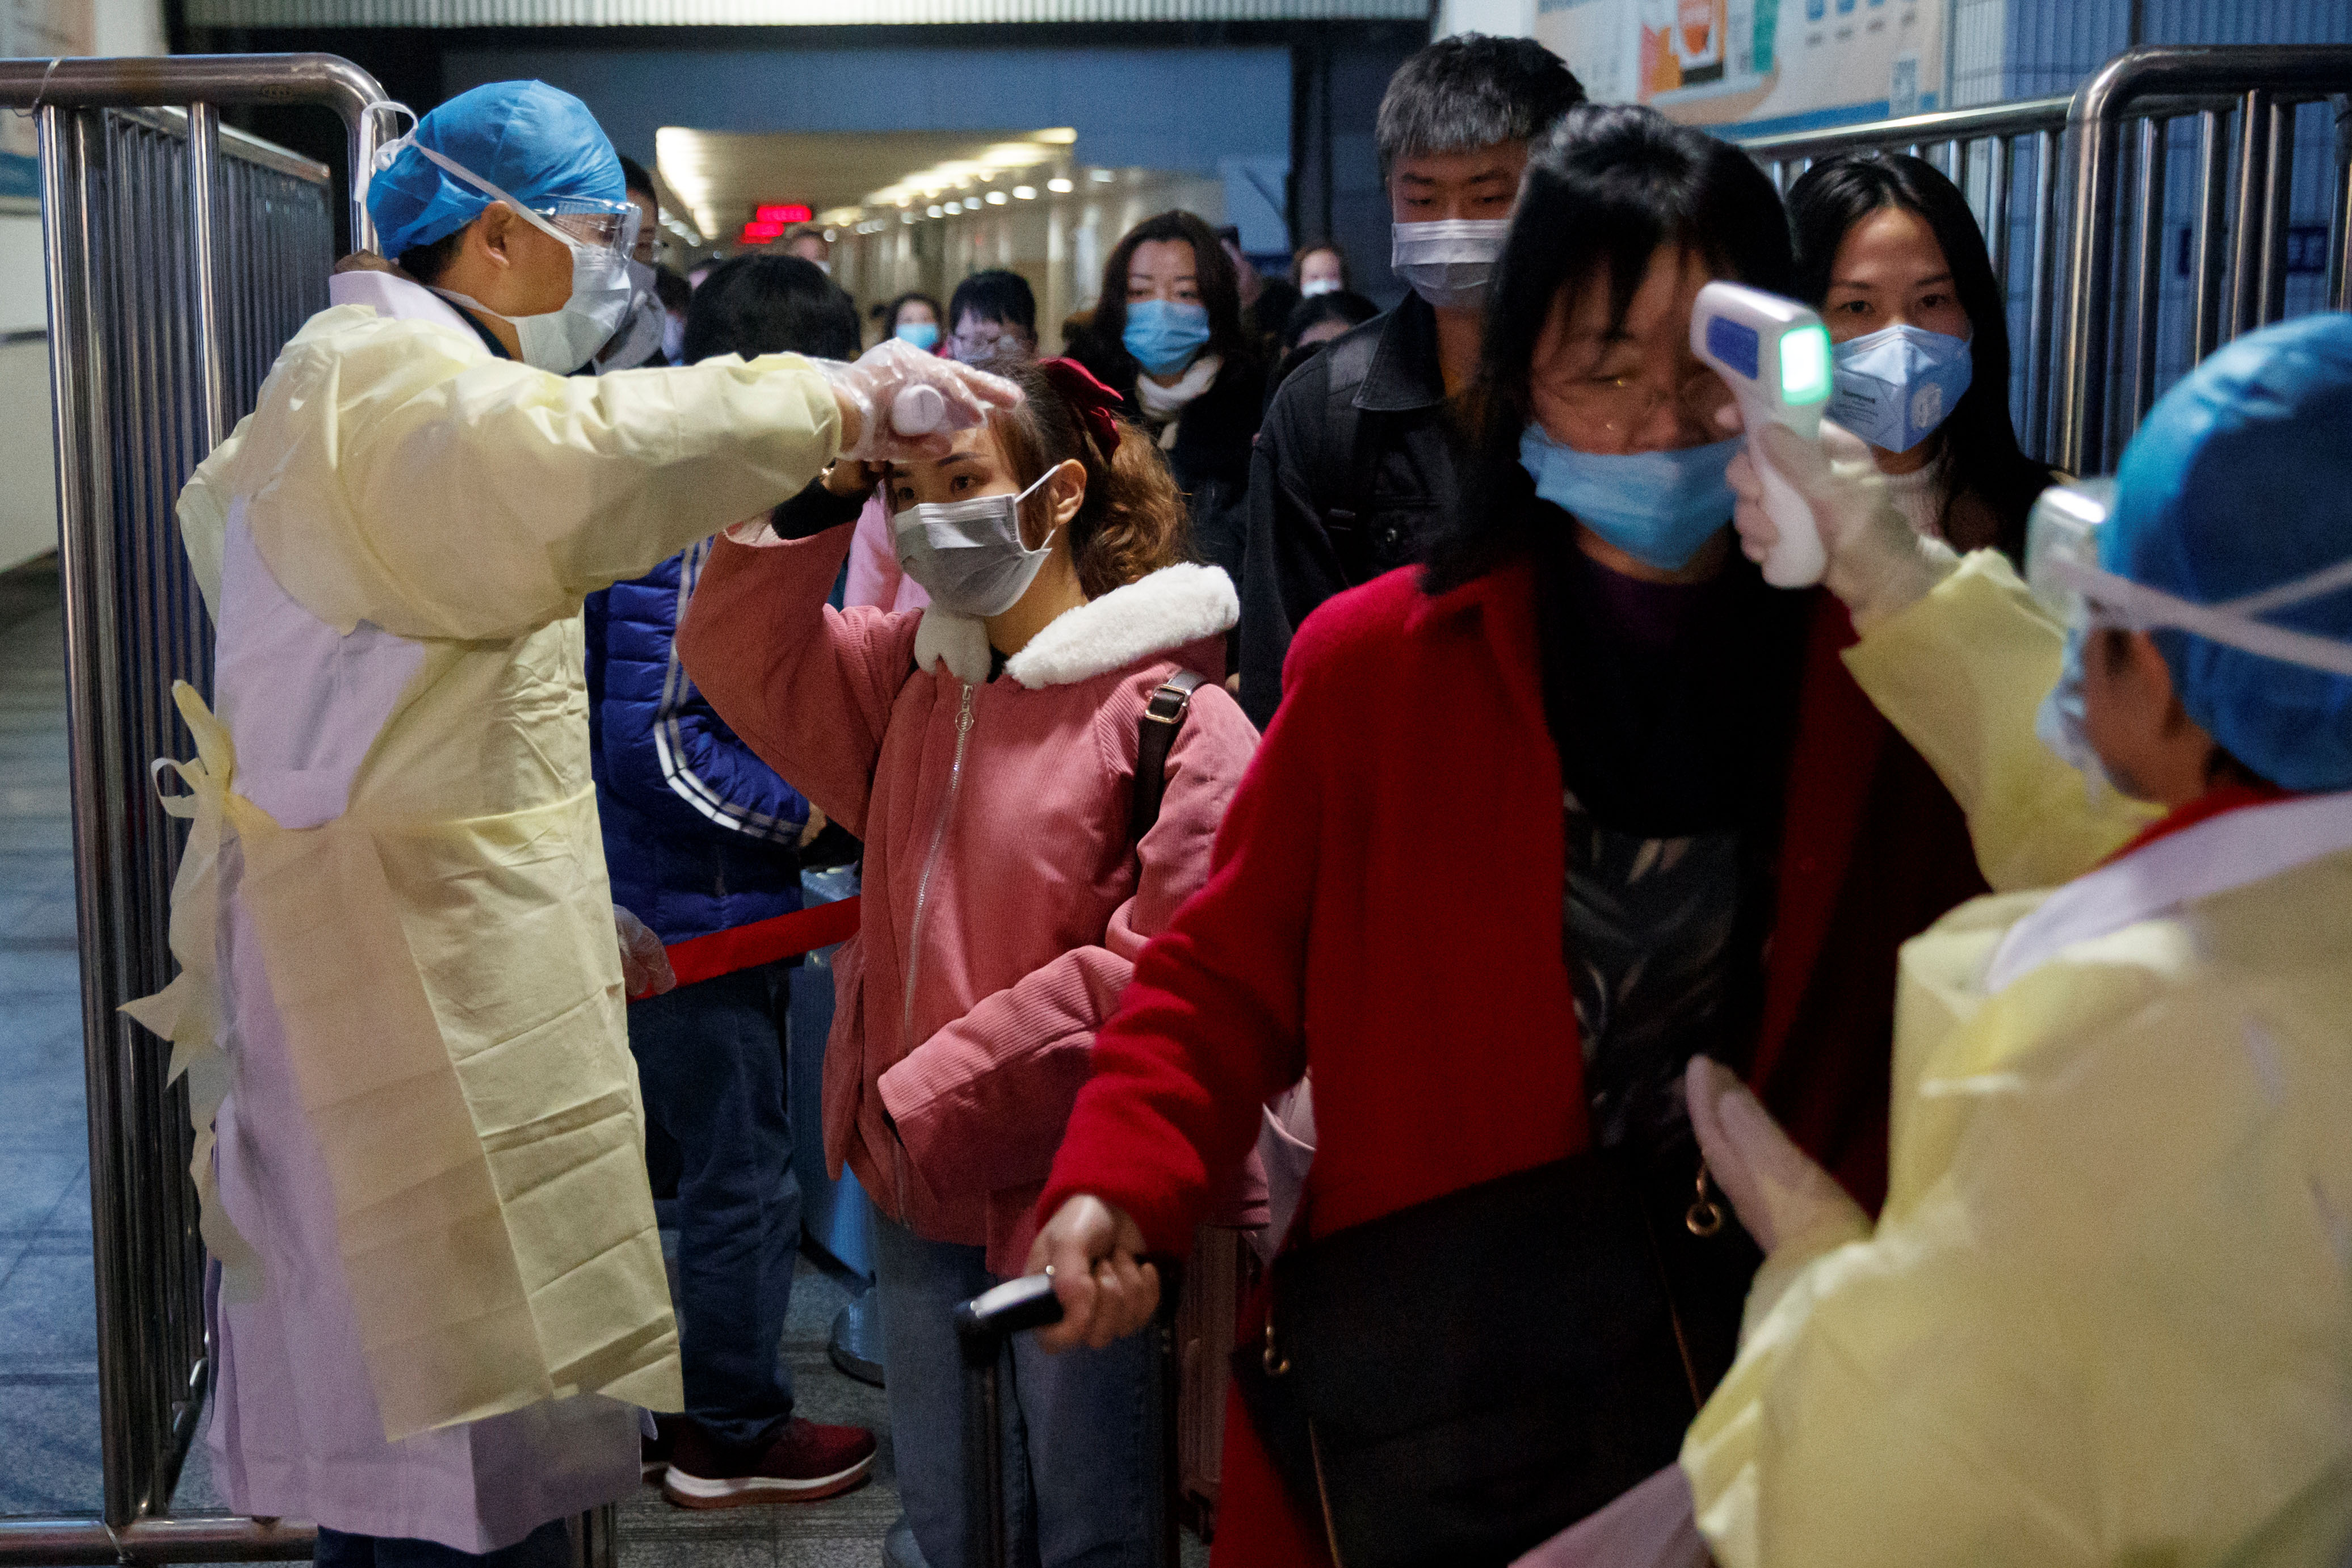 Medical workers take the temperature of passengers after they got off the train in Jiujiang, Jiangxi province, China, as the country is hit by an outbreak of a new coronavirus, January 29, 2020. Photo: Reuters